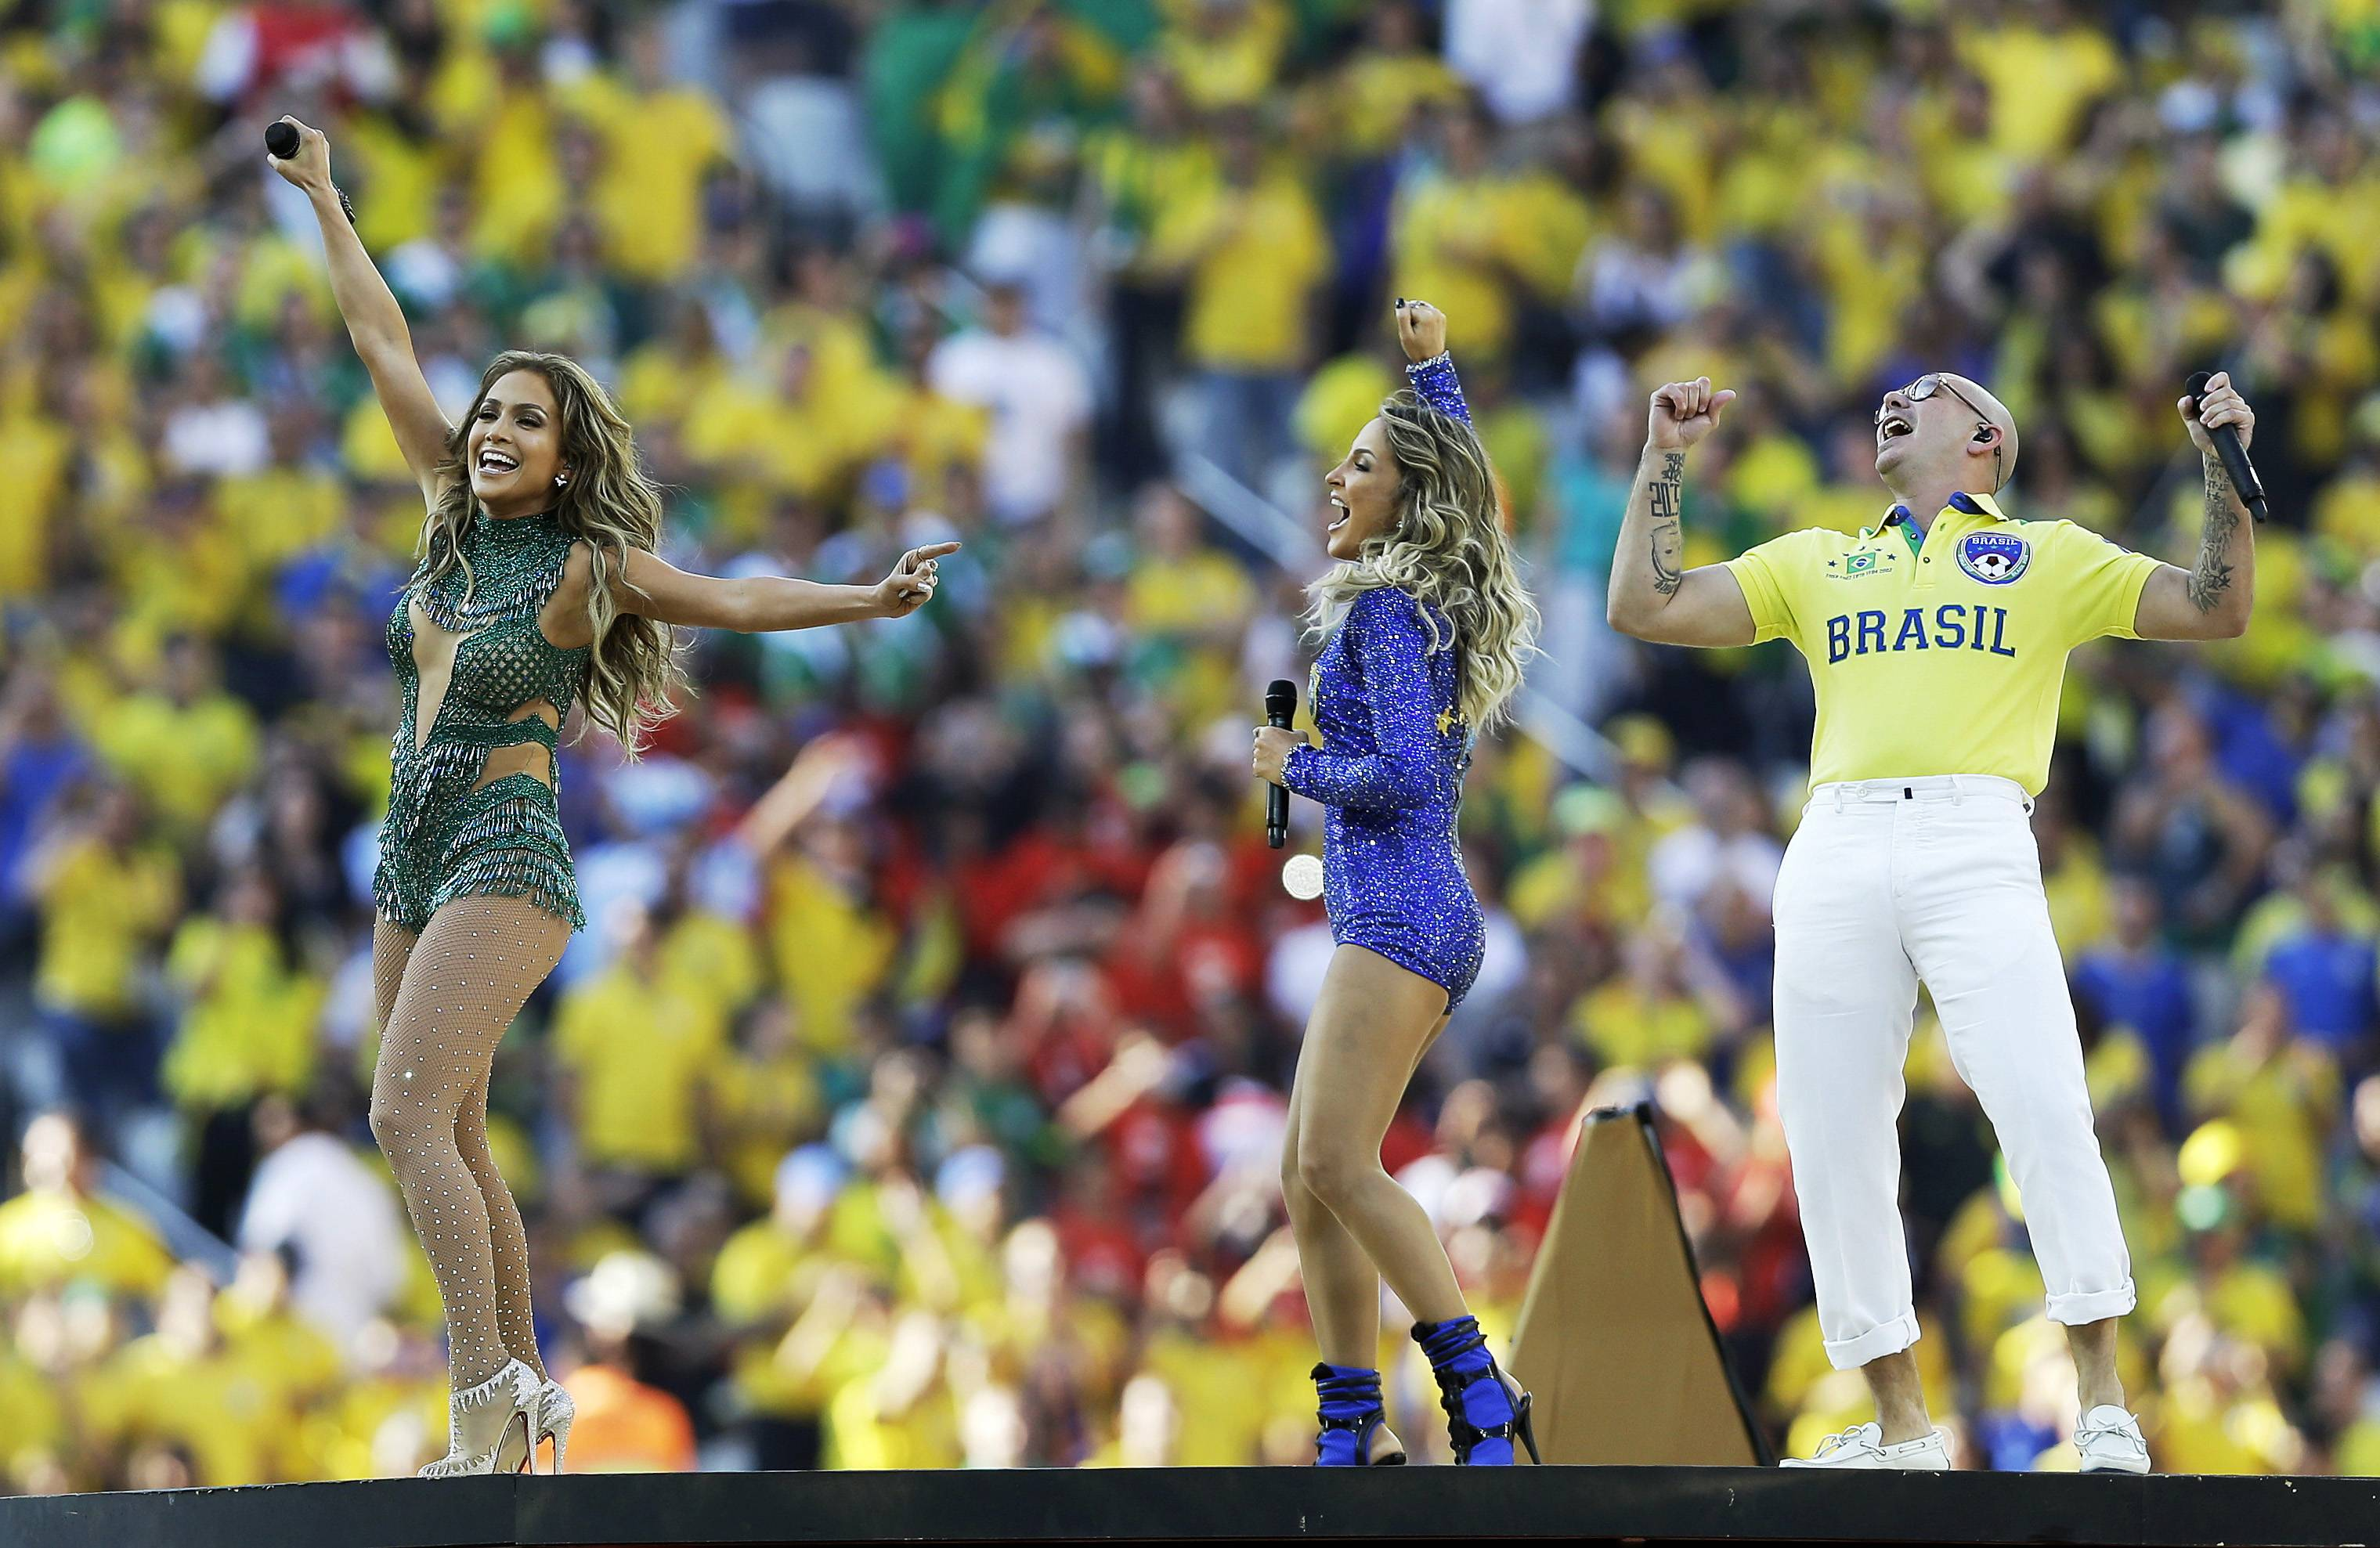 Jennifer Lopez, left, performed with Brazilian singer Claudia Leitte and rapper Pitbull during the World Cup opening ceremony.